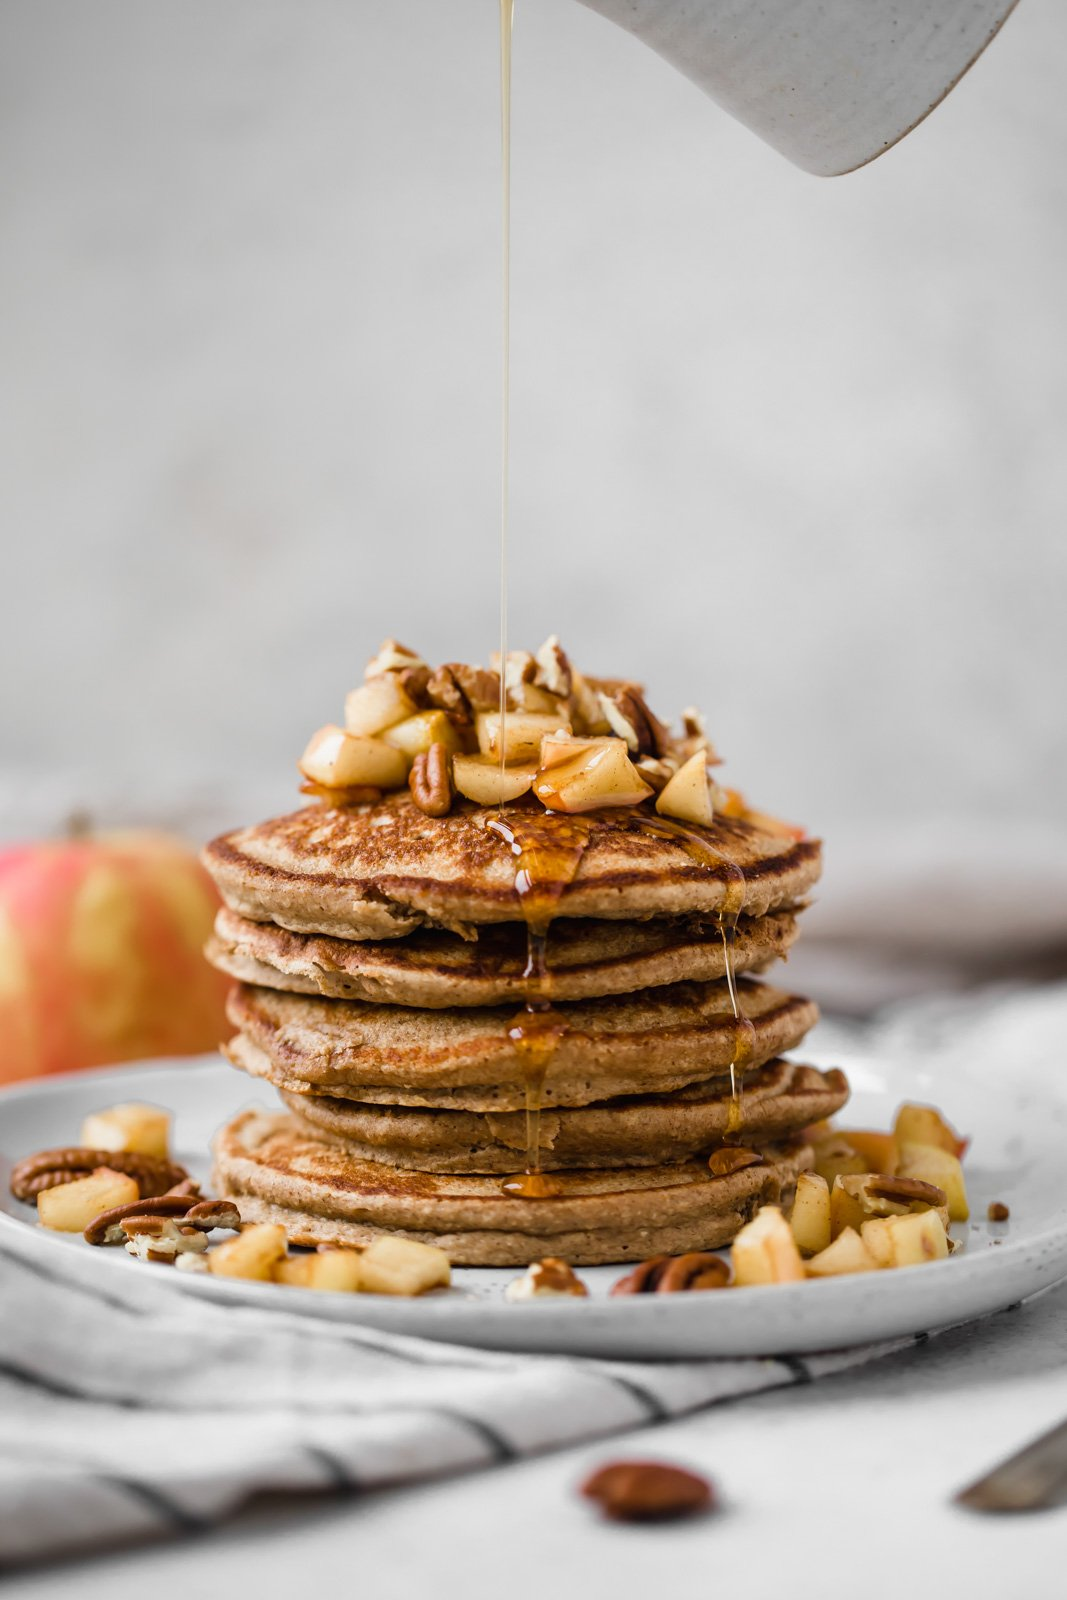 healthy apple pancakes with maple syrup being poured on top